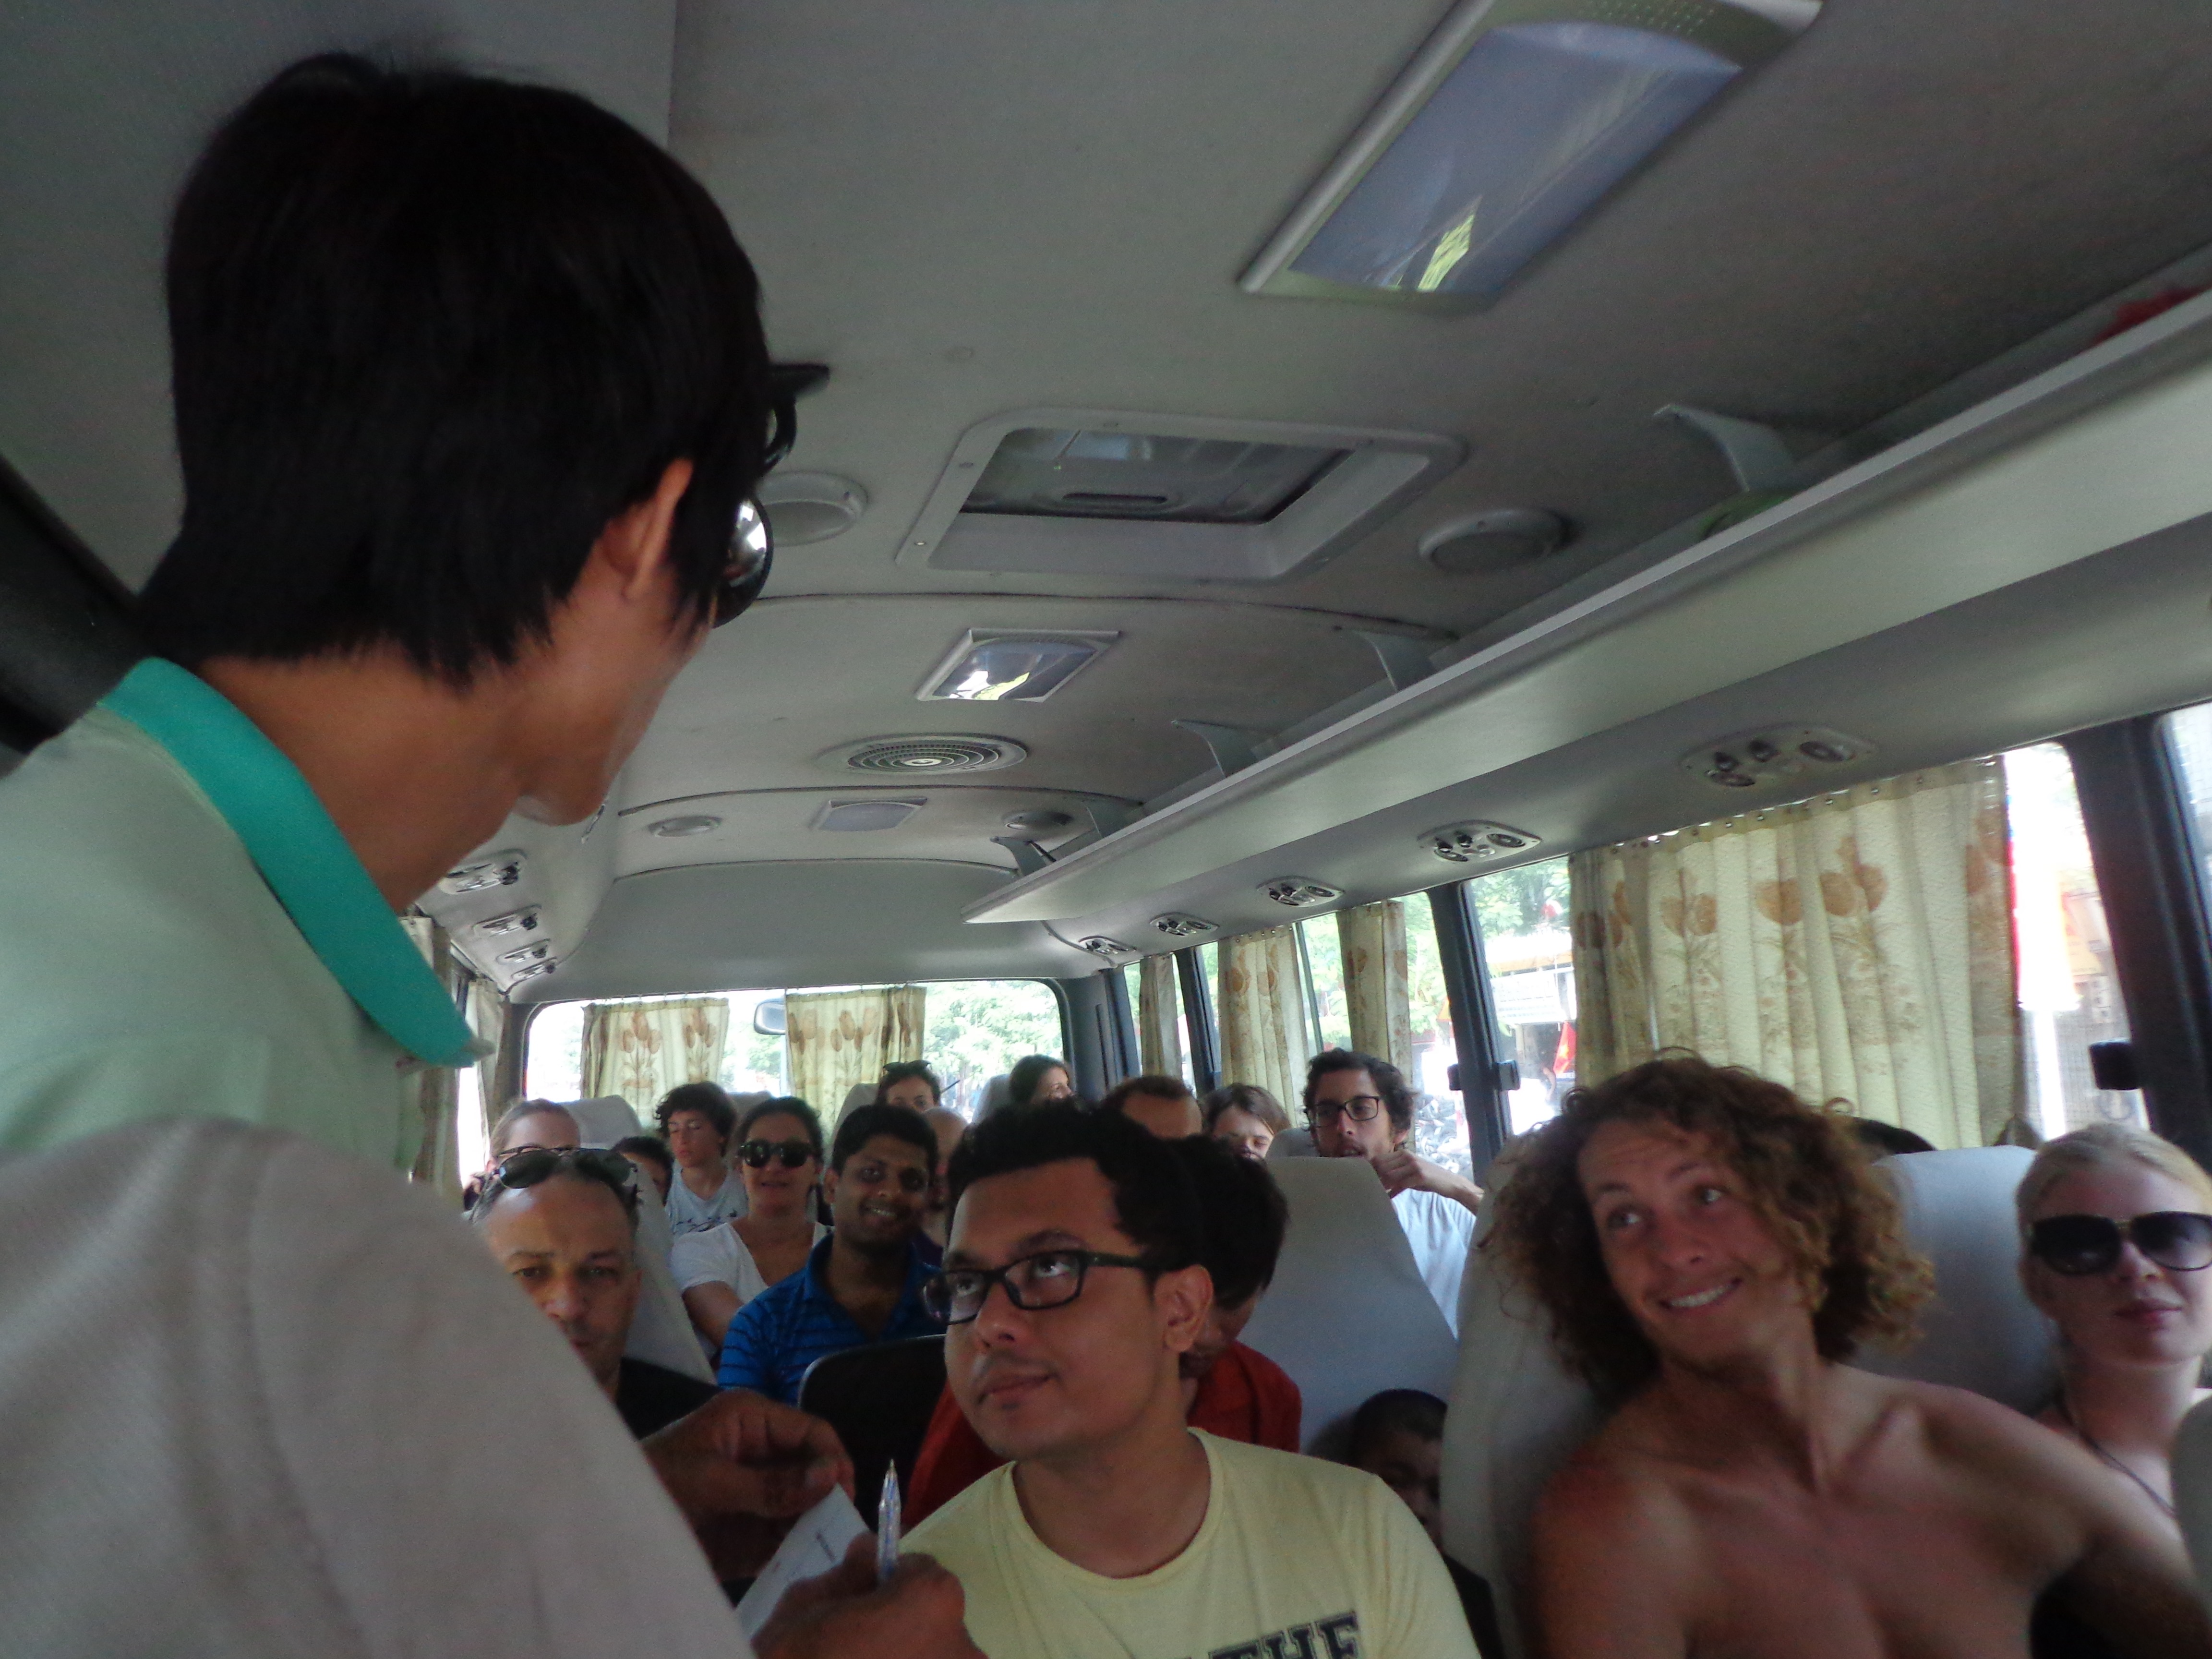 Phuong, our guide introduces himself and the trip itinerary on bus.